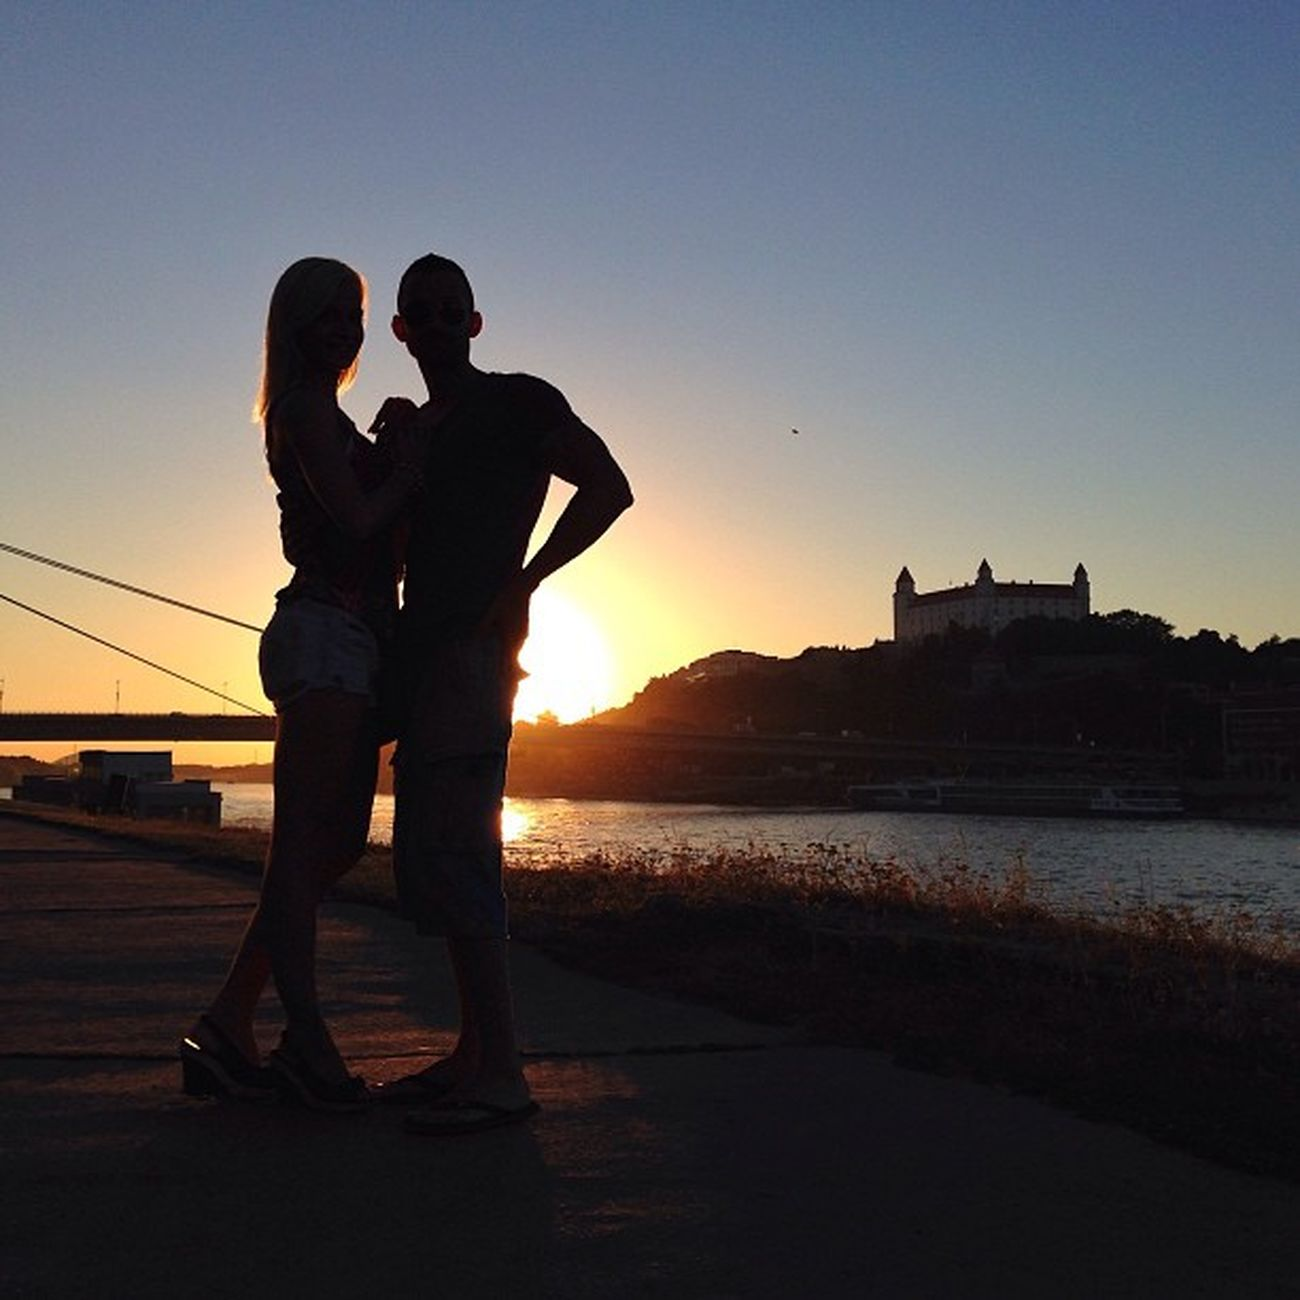 Spectacular #sunset in #Bratislava with #silhouettes of my younger bro filipbrutenic and his lovely wife mimibrutenic ?☀️☀️☀️#allshots_ #bridge #castle #colorful #dotz #capture_today #citybridges #from_city #gang_family #gramoftheday #iccity #ic_cities #o Allshots_ Ic_cities Summer Gramoftheday Sunset Bridge O2travel Silhouette Photowall_silhouette Castle Kewiki_silhouette Capture_today Loveyoursummer Silhouettes Top_masters Colorful From_city Photowall Pro_shooters Bratislava Iccity Slovakia Citybridges Gang_family Dotz Bratislava_castle